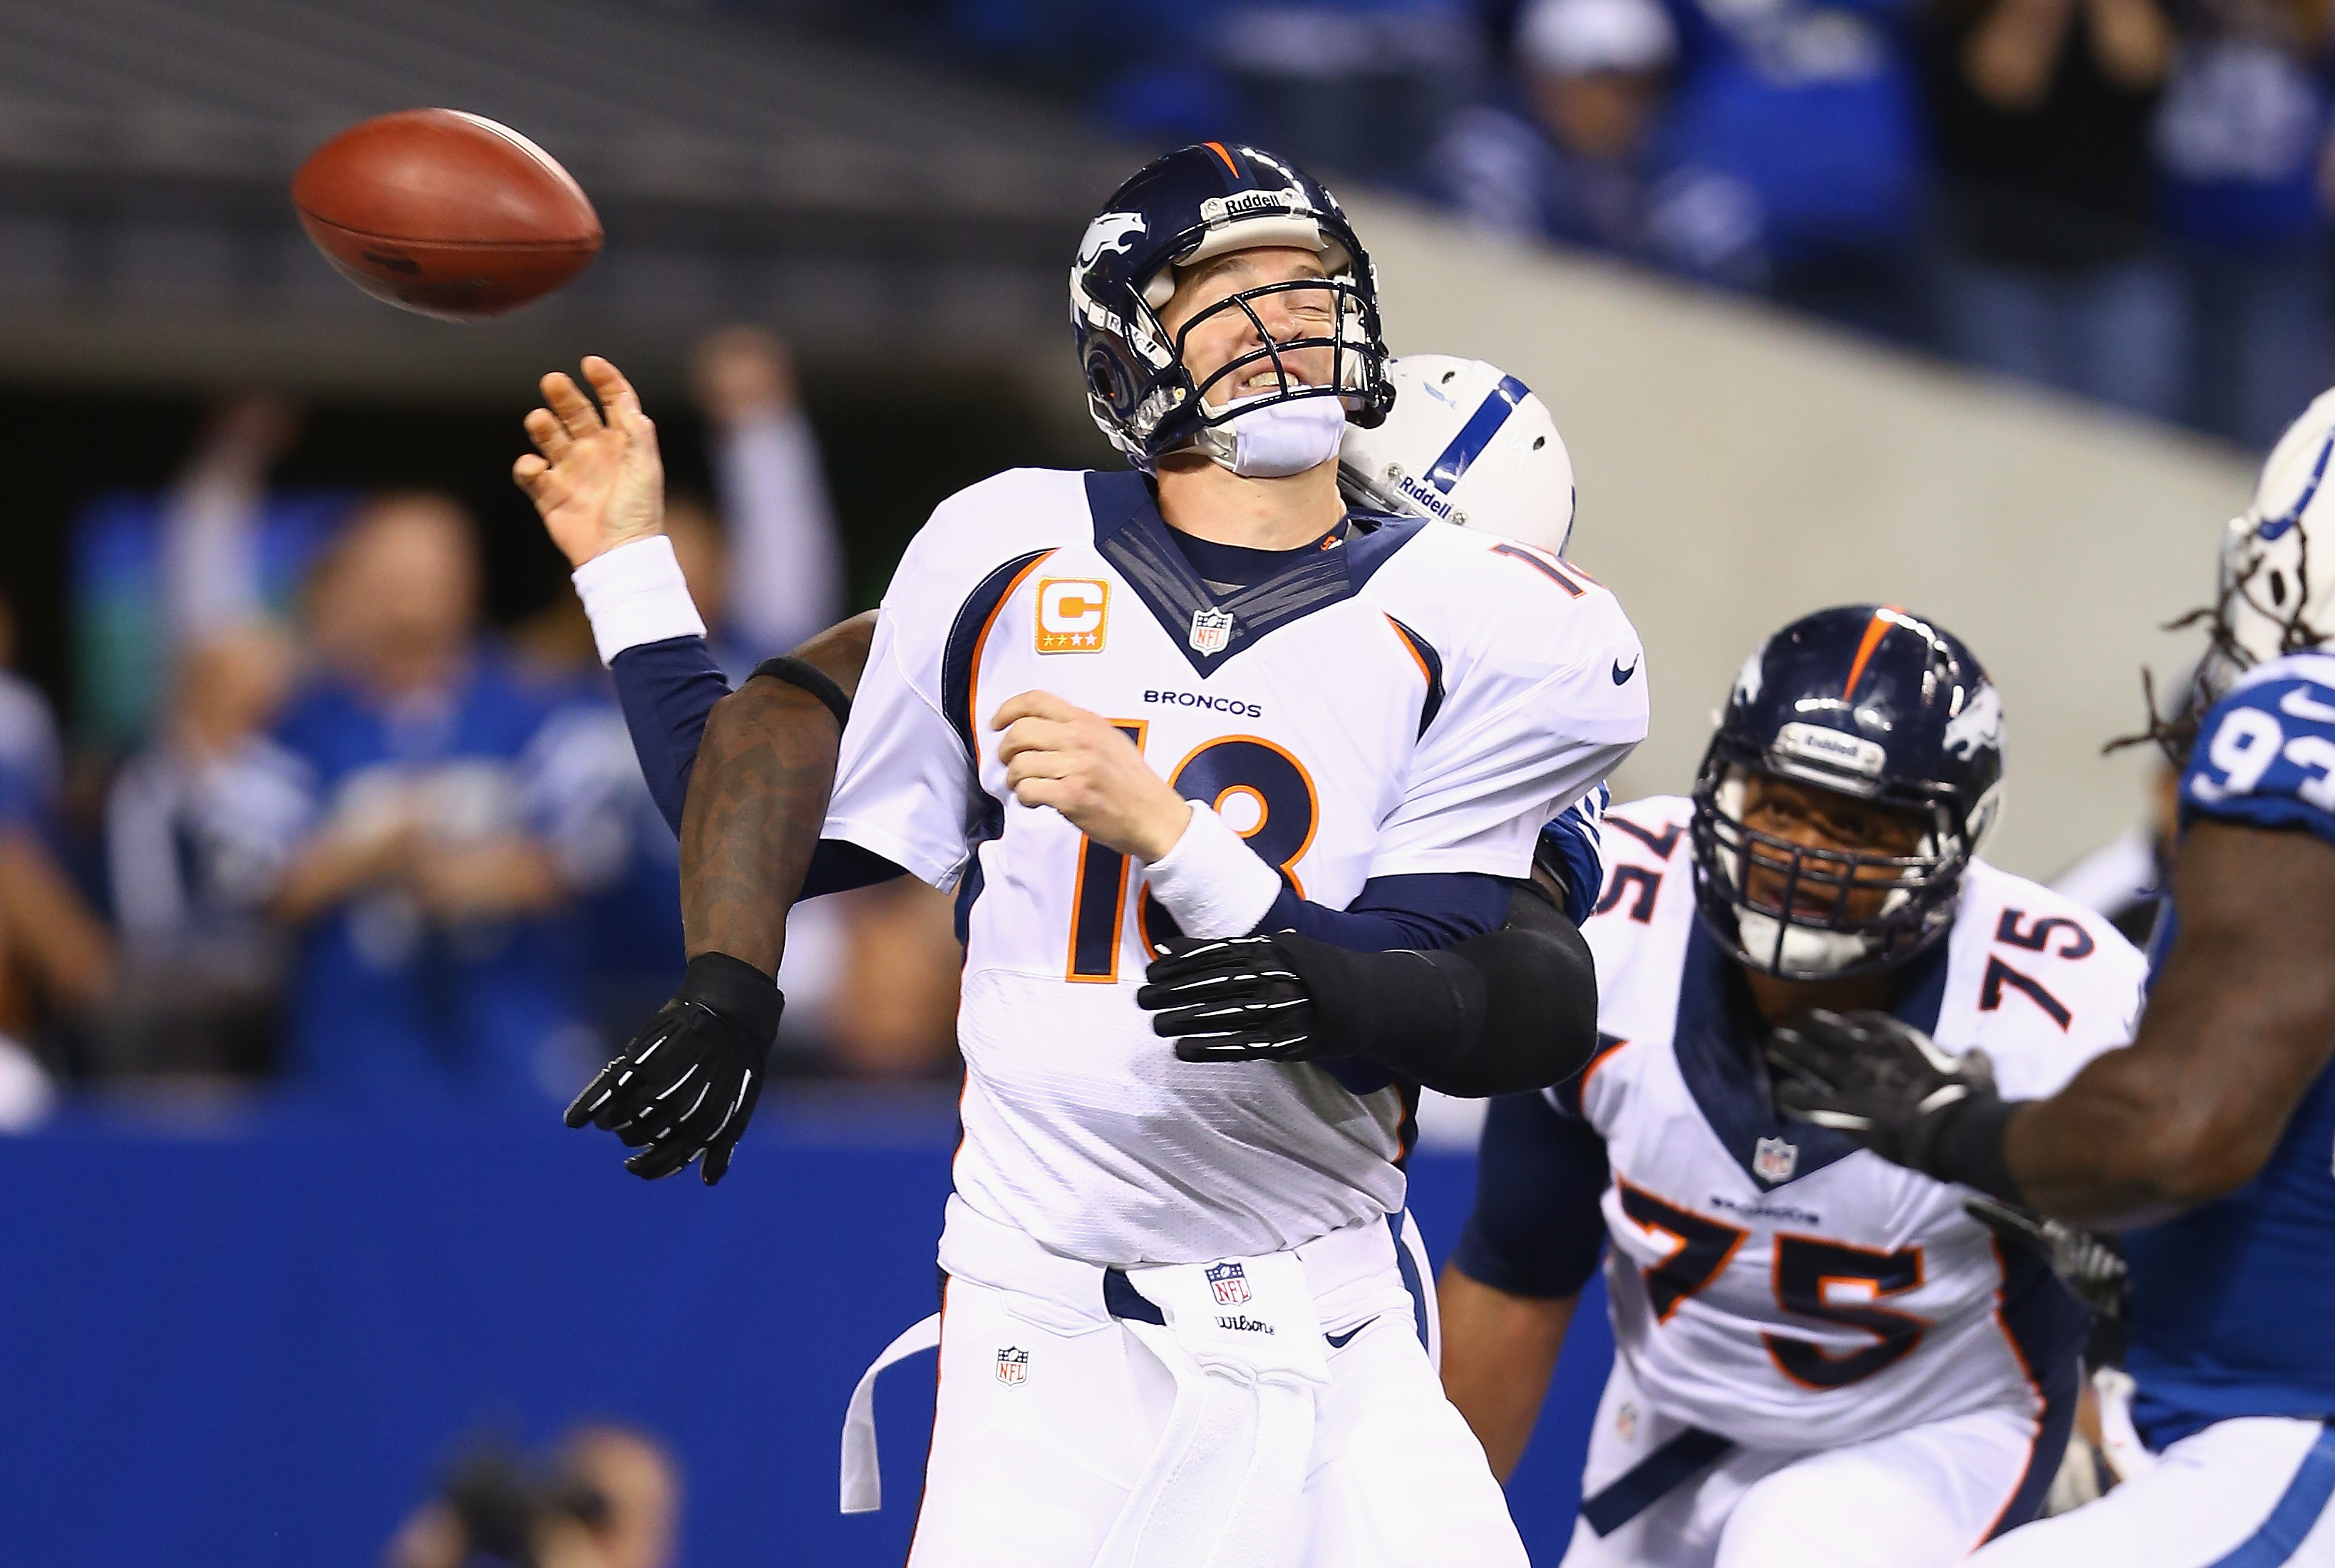 Robert mathis sacks peyton manning photo sums up indianapolis peyton manning voltagebd Images